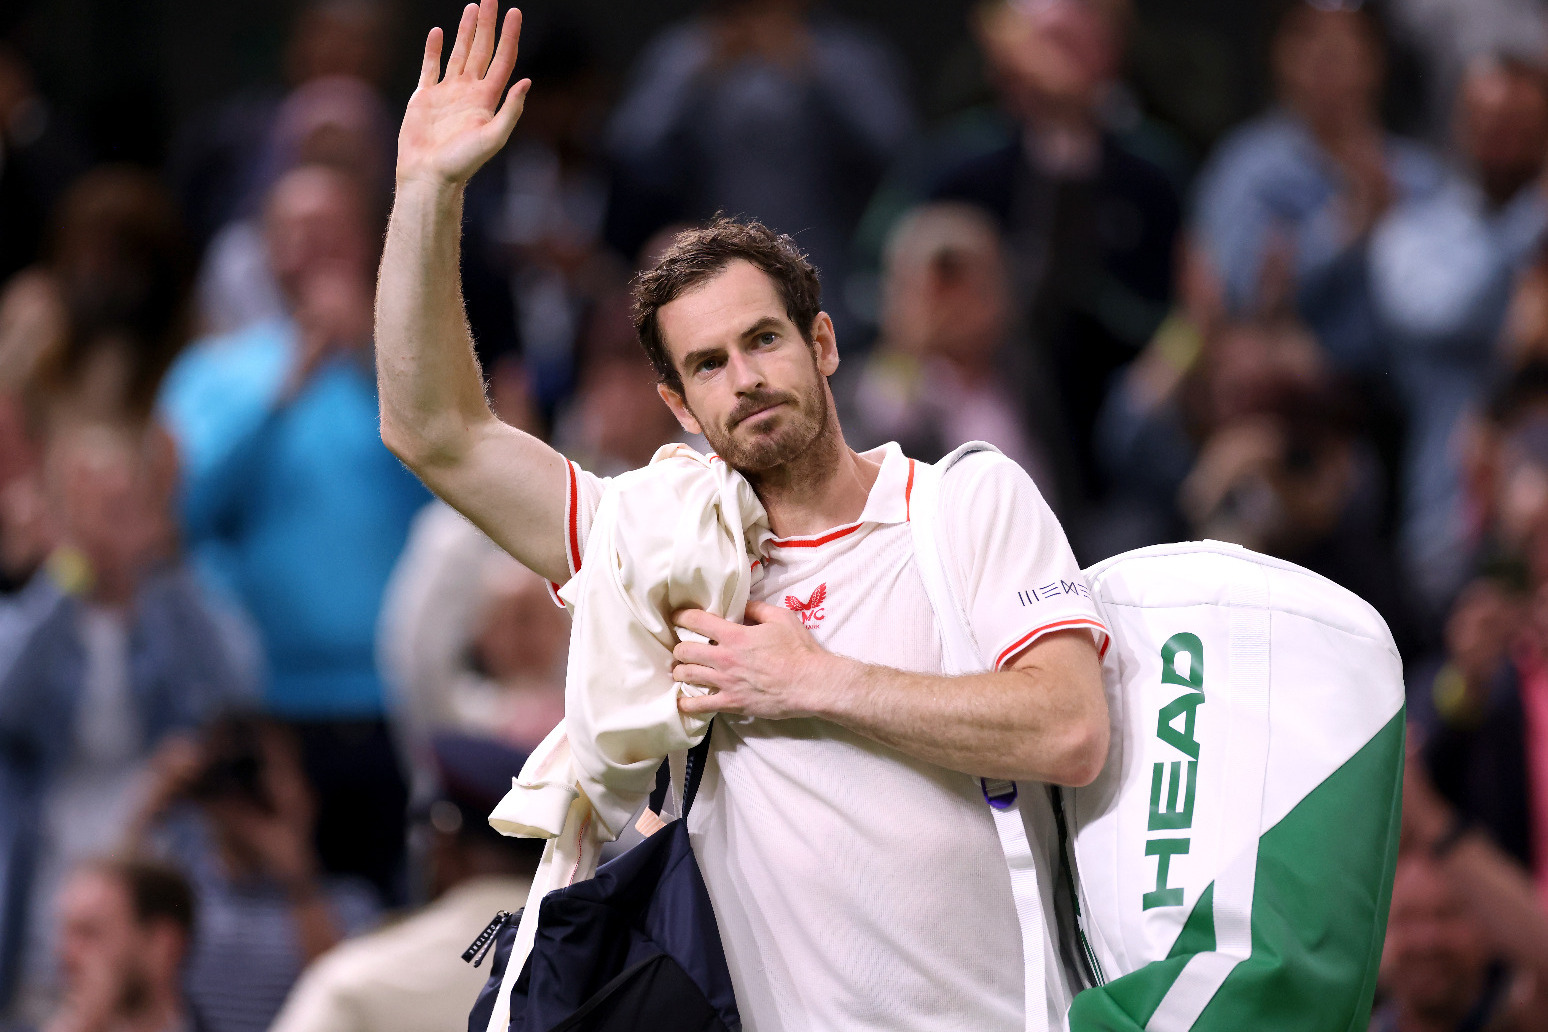 Andy Murray unlikely to play in Davis Cup as he looks forward to Australian Open